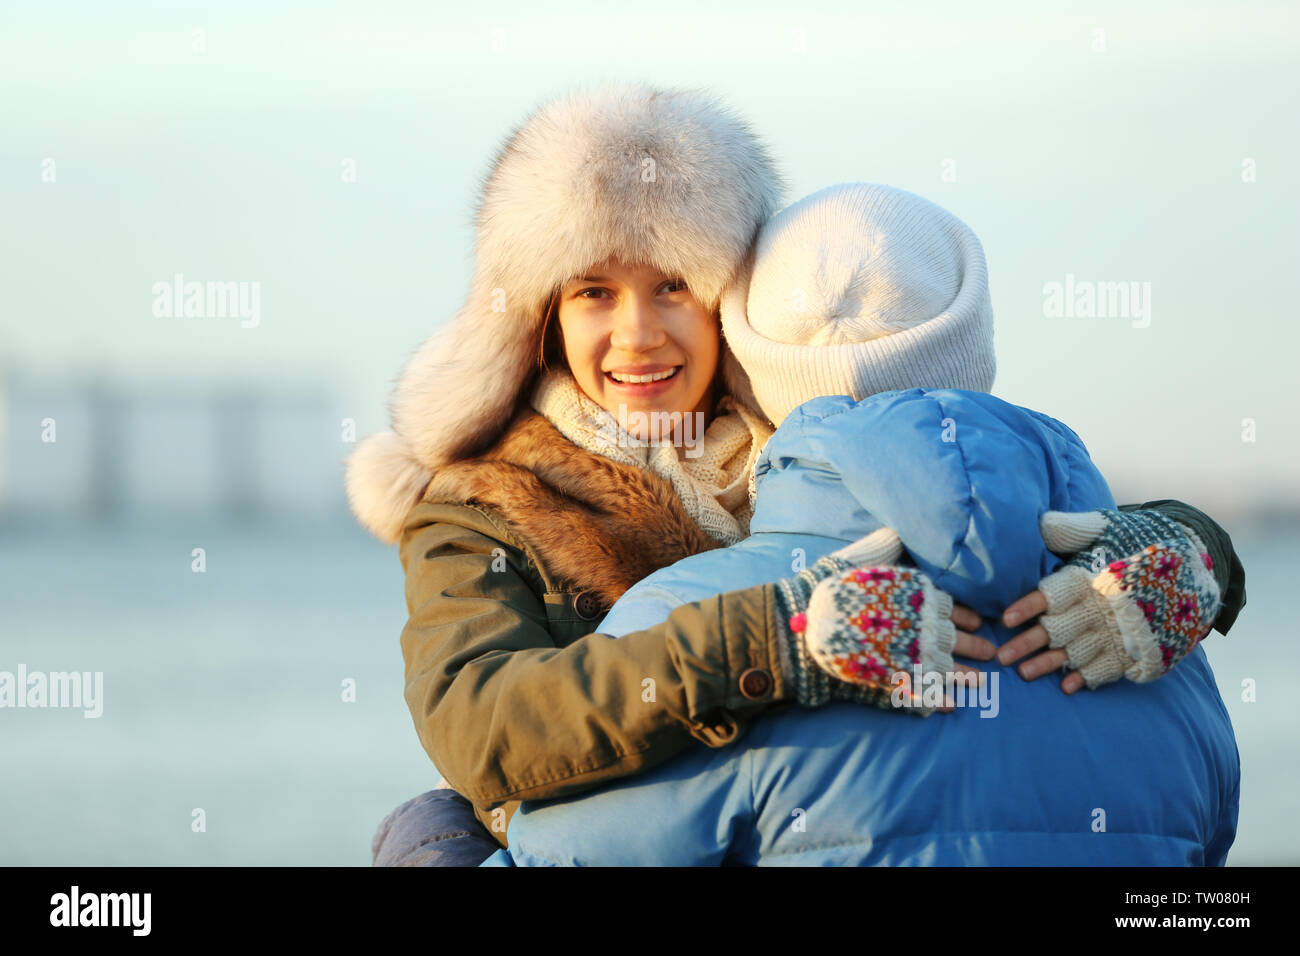 Young couple embracing on blurred river background - Stock Image